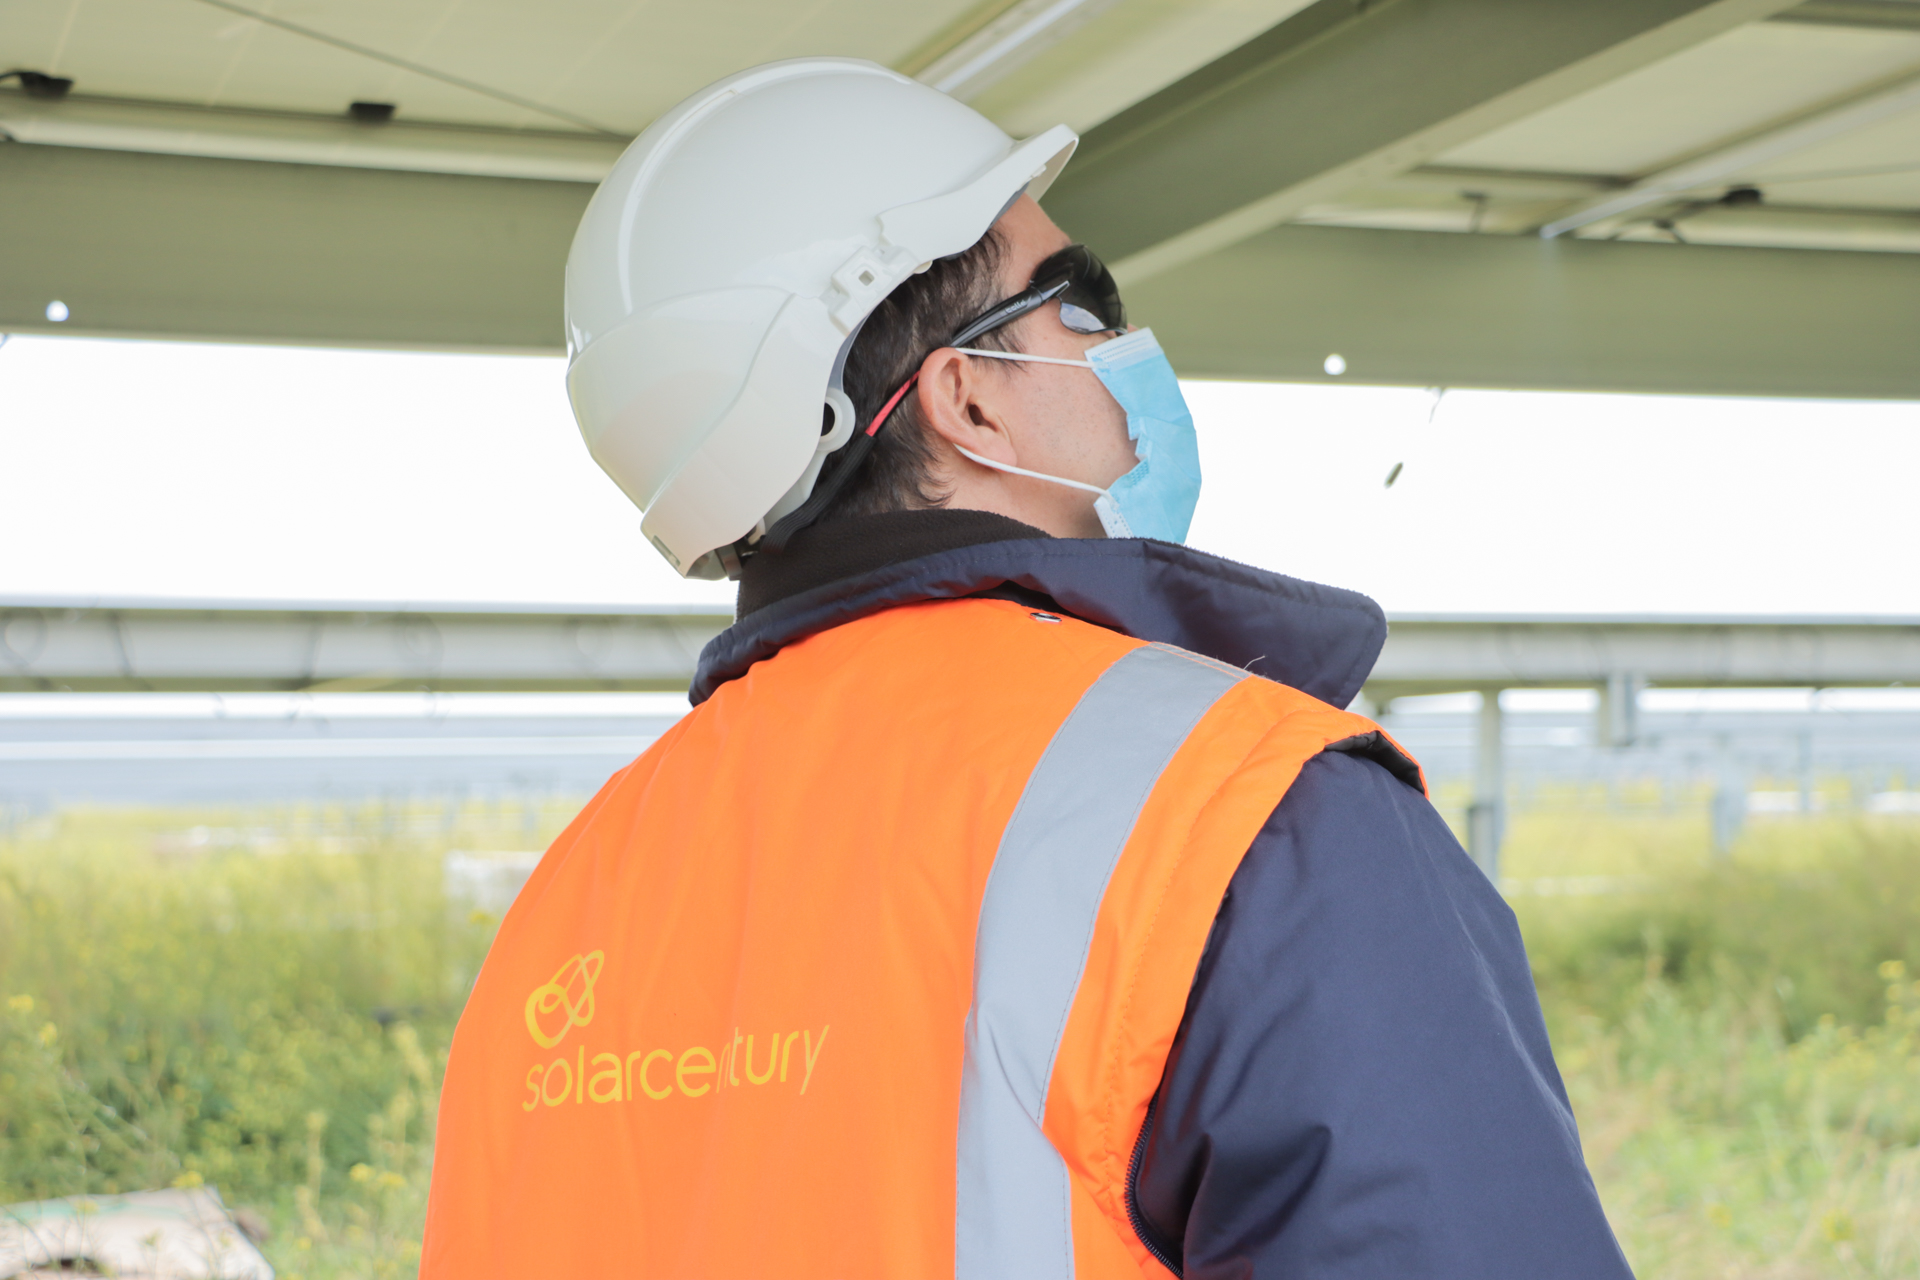 Solarcentury has sidestepped COVID-related delays to projects to continue construction work on its portfolio. Image: Solarcentury.